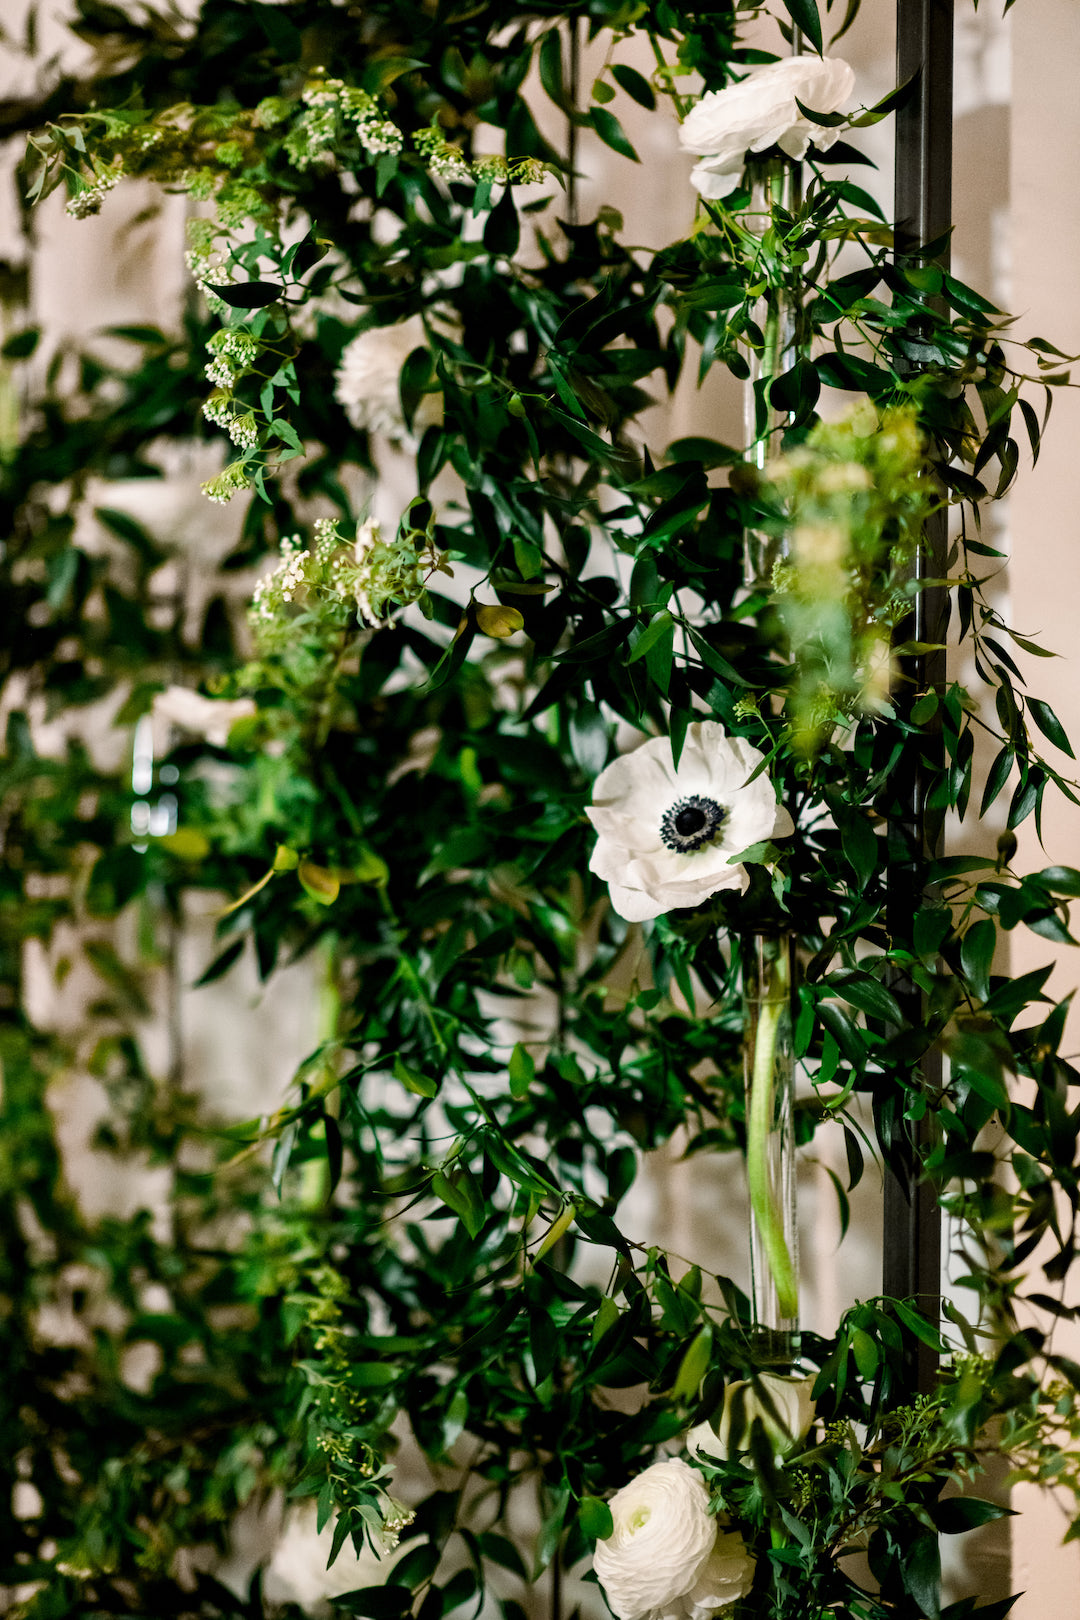 Wedding floral designs for Pittsburgh wedding at Hotel Monaco planned by Exhale Events. Find more modern wedding ideas at exhale-events.com!